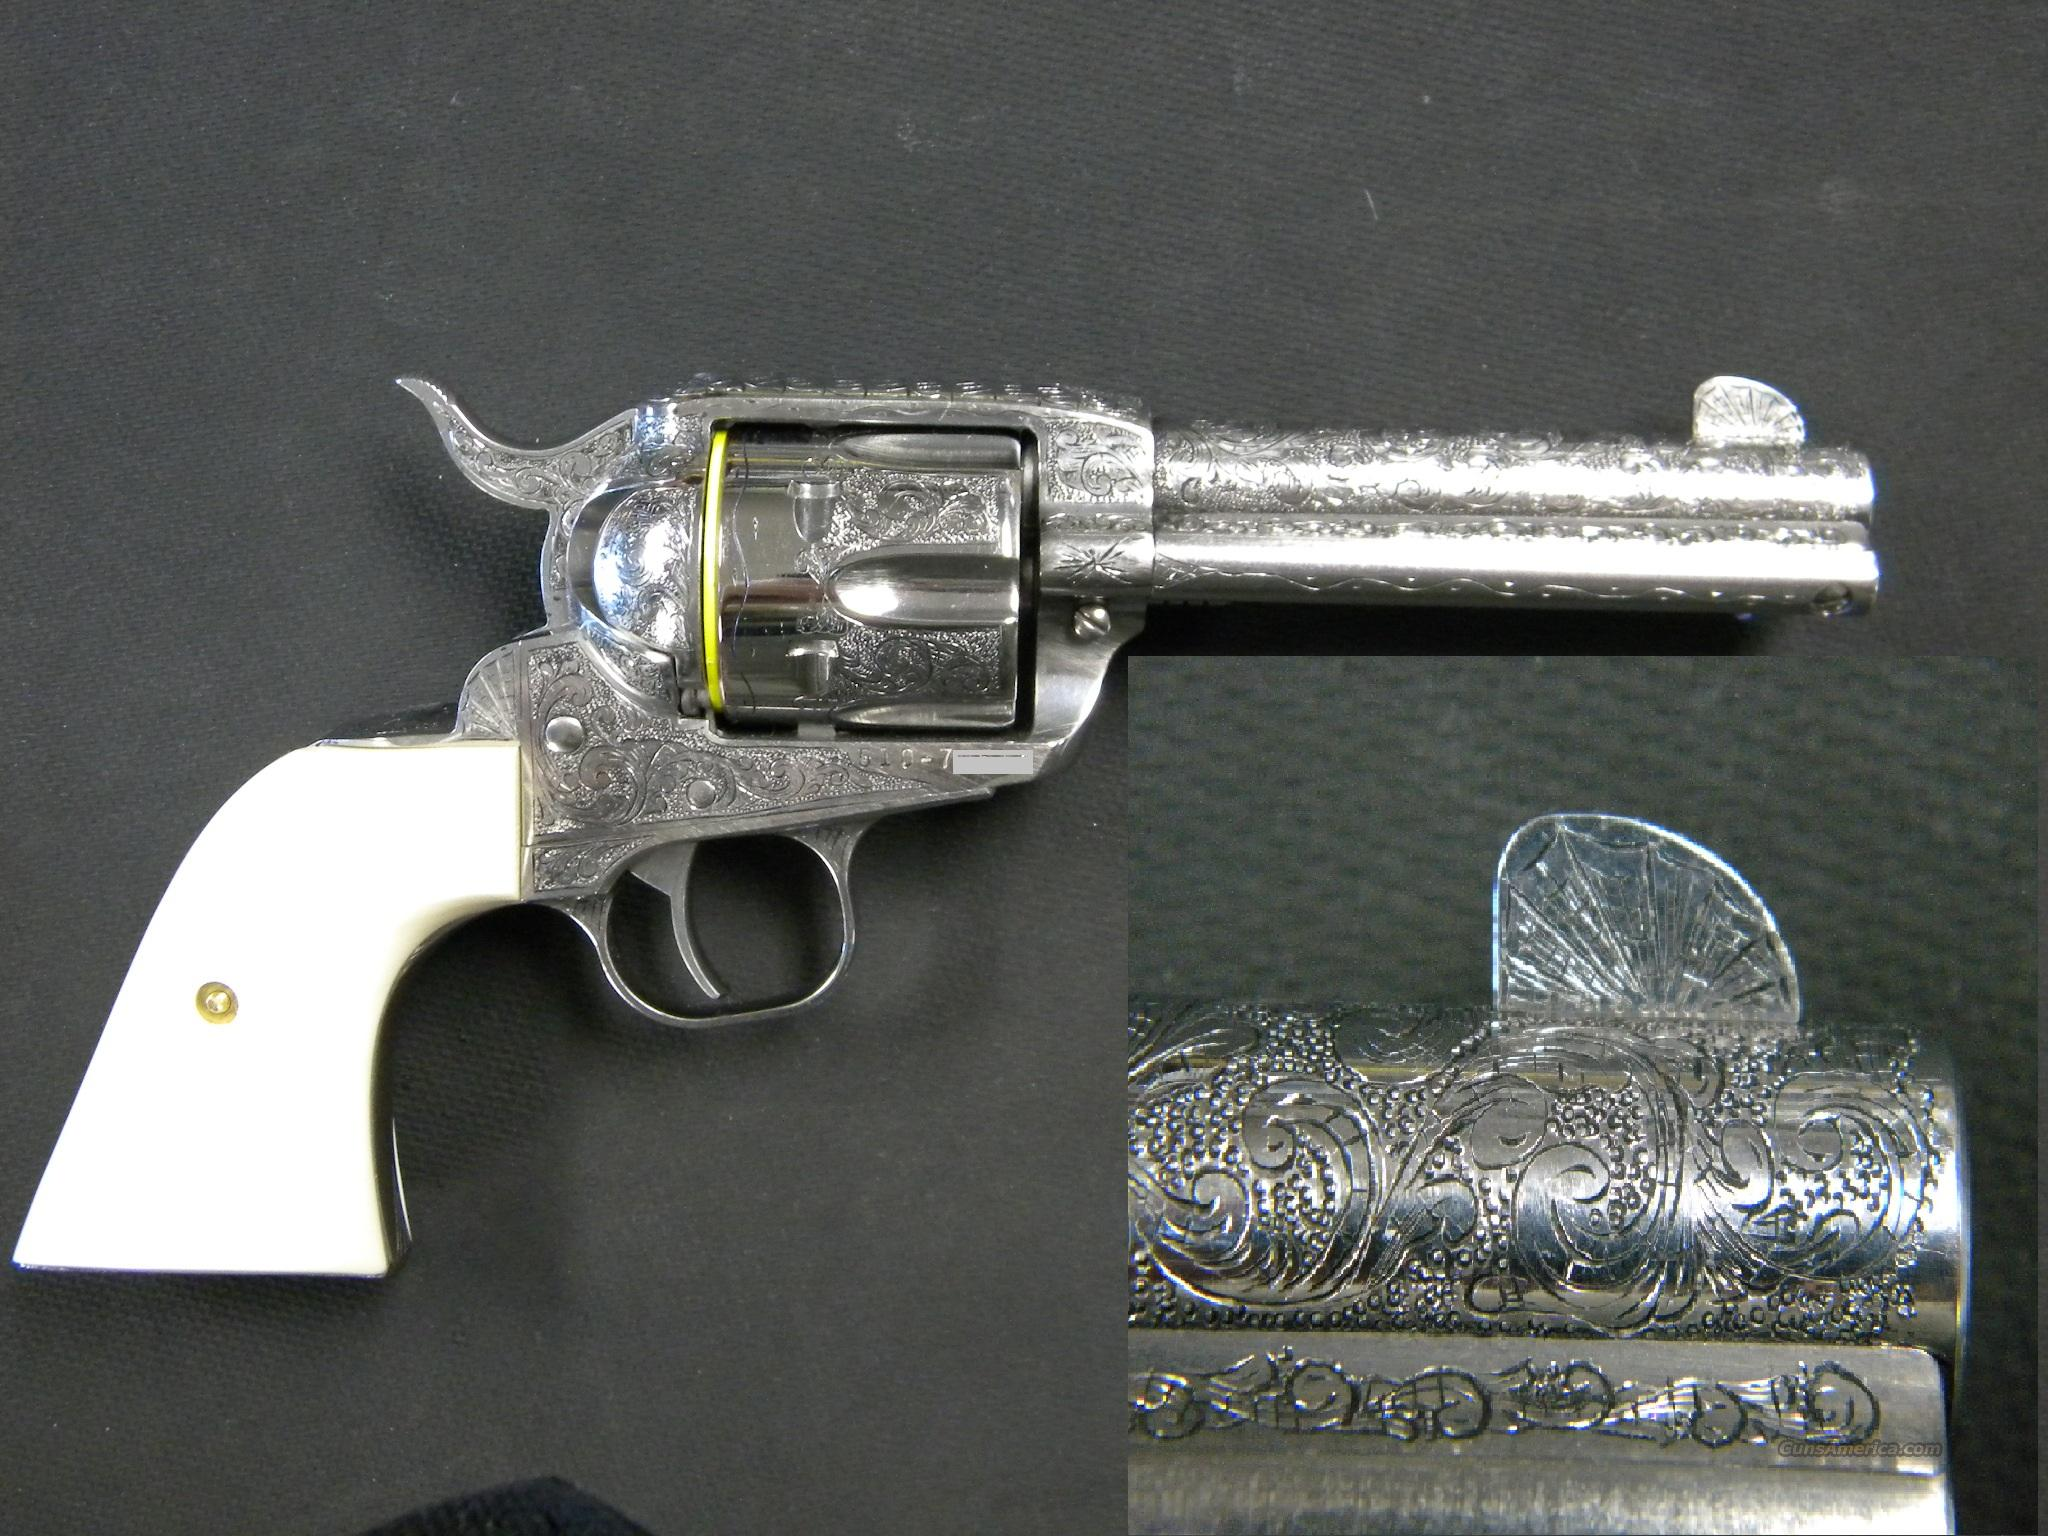 Hand Engraved Ruger New Vaquero .357 Magnum  Guns > Pistols > Ruger Single Action Revolvers > Cowboy Action